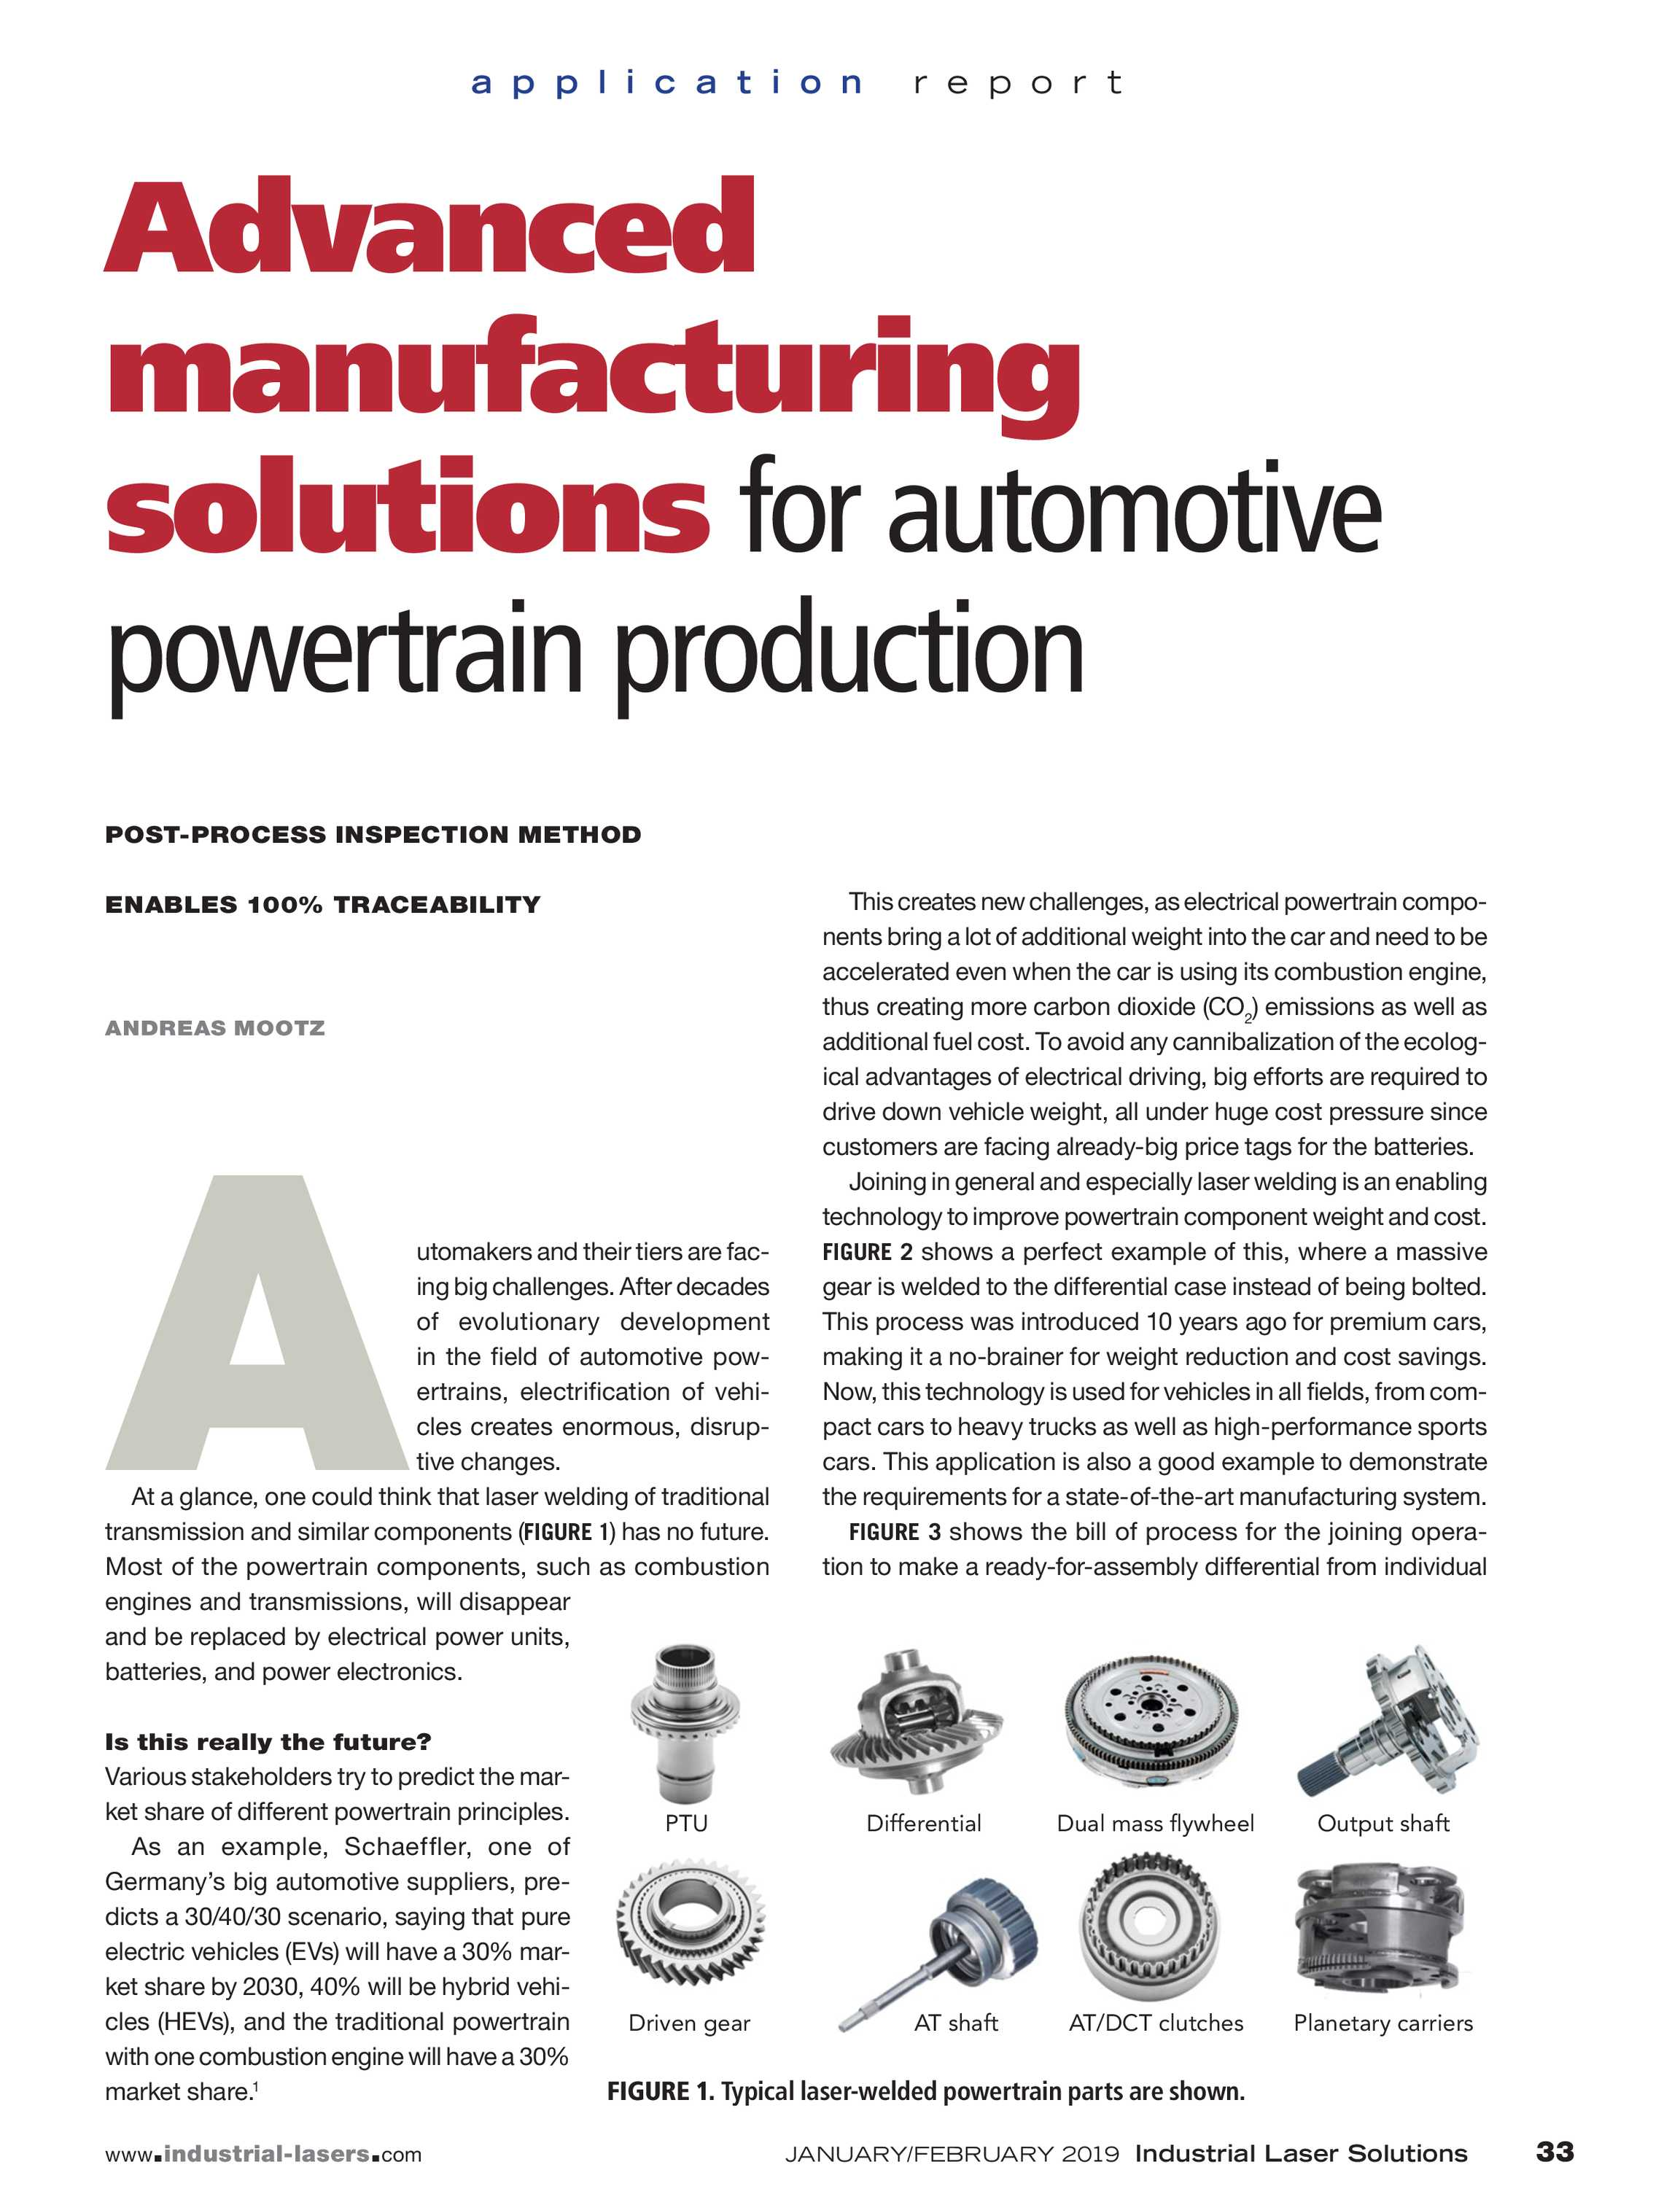 Industrial Laser Solutions - January/February 2019 - page 33